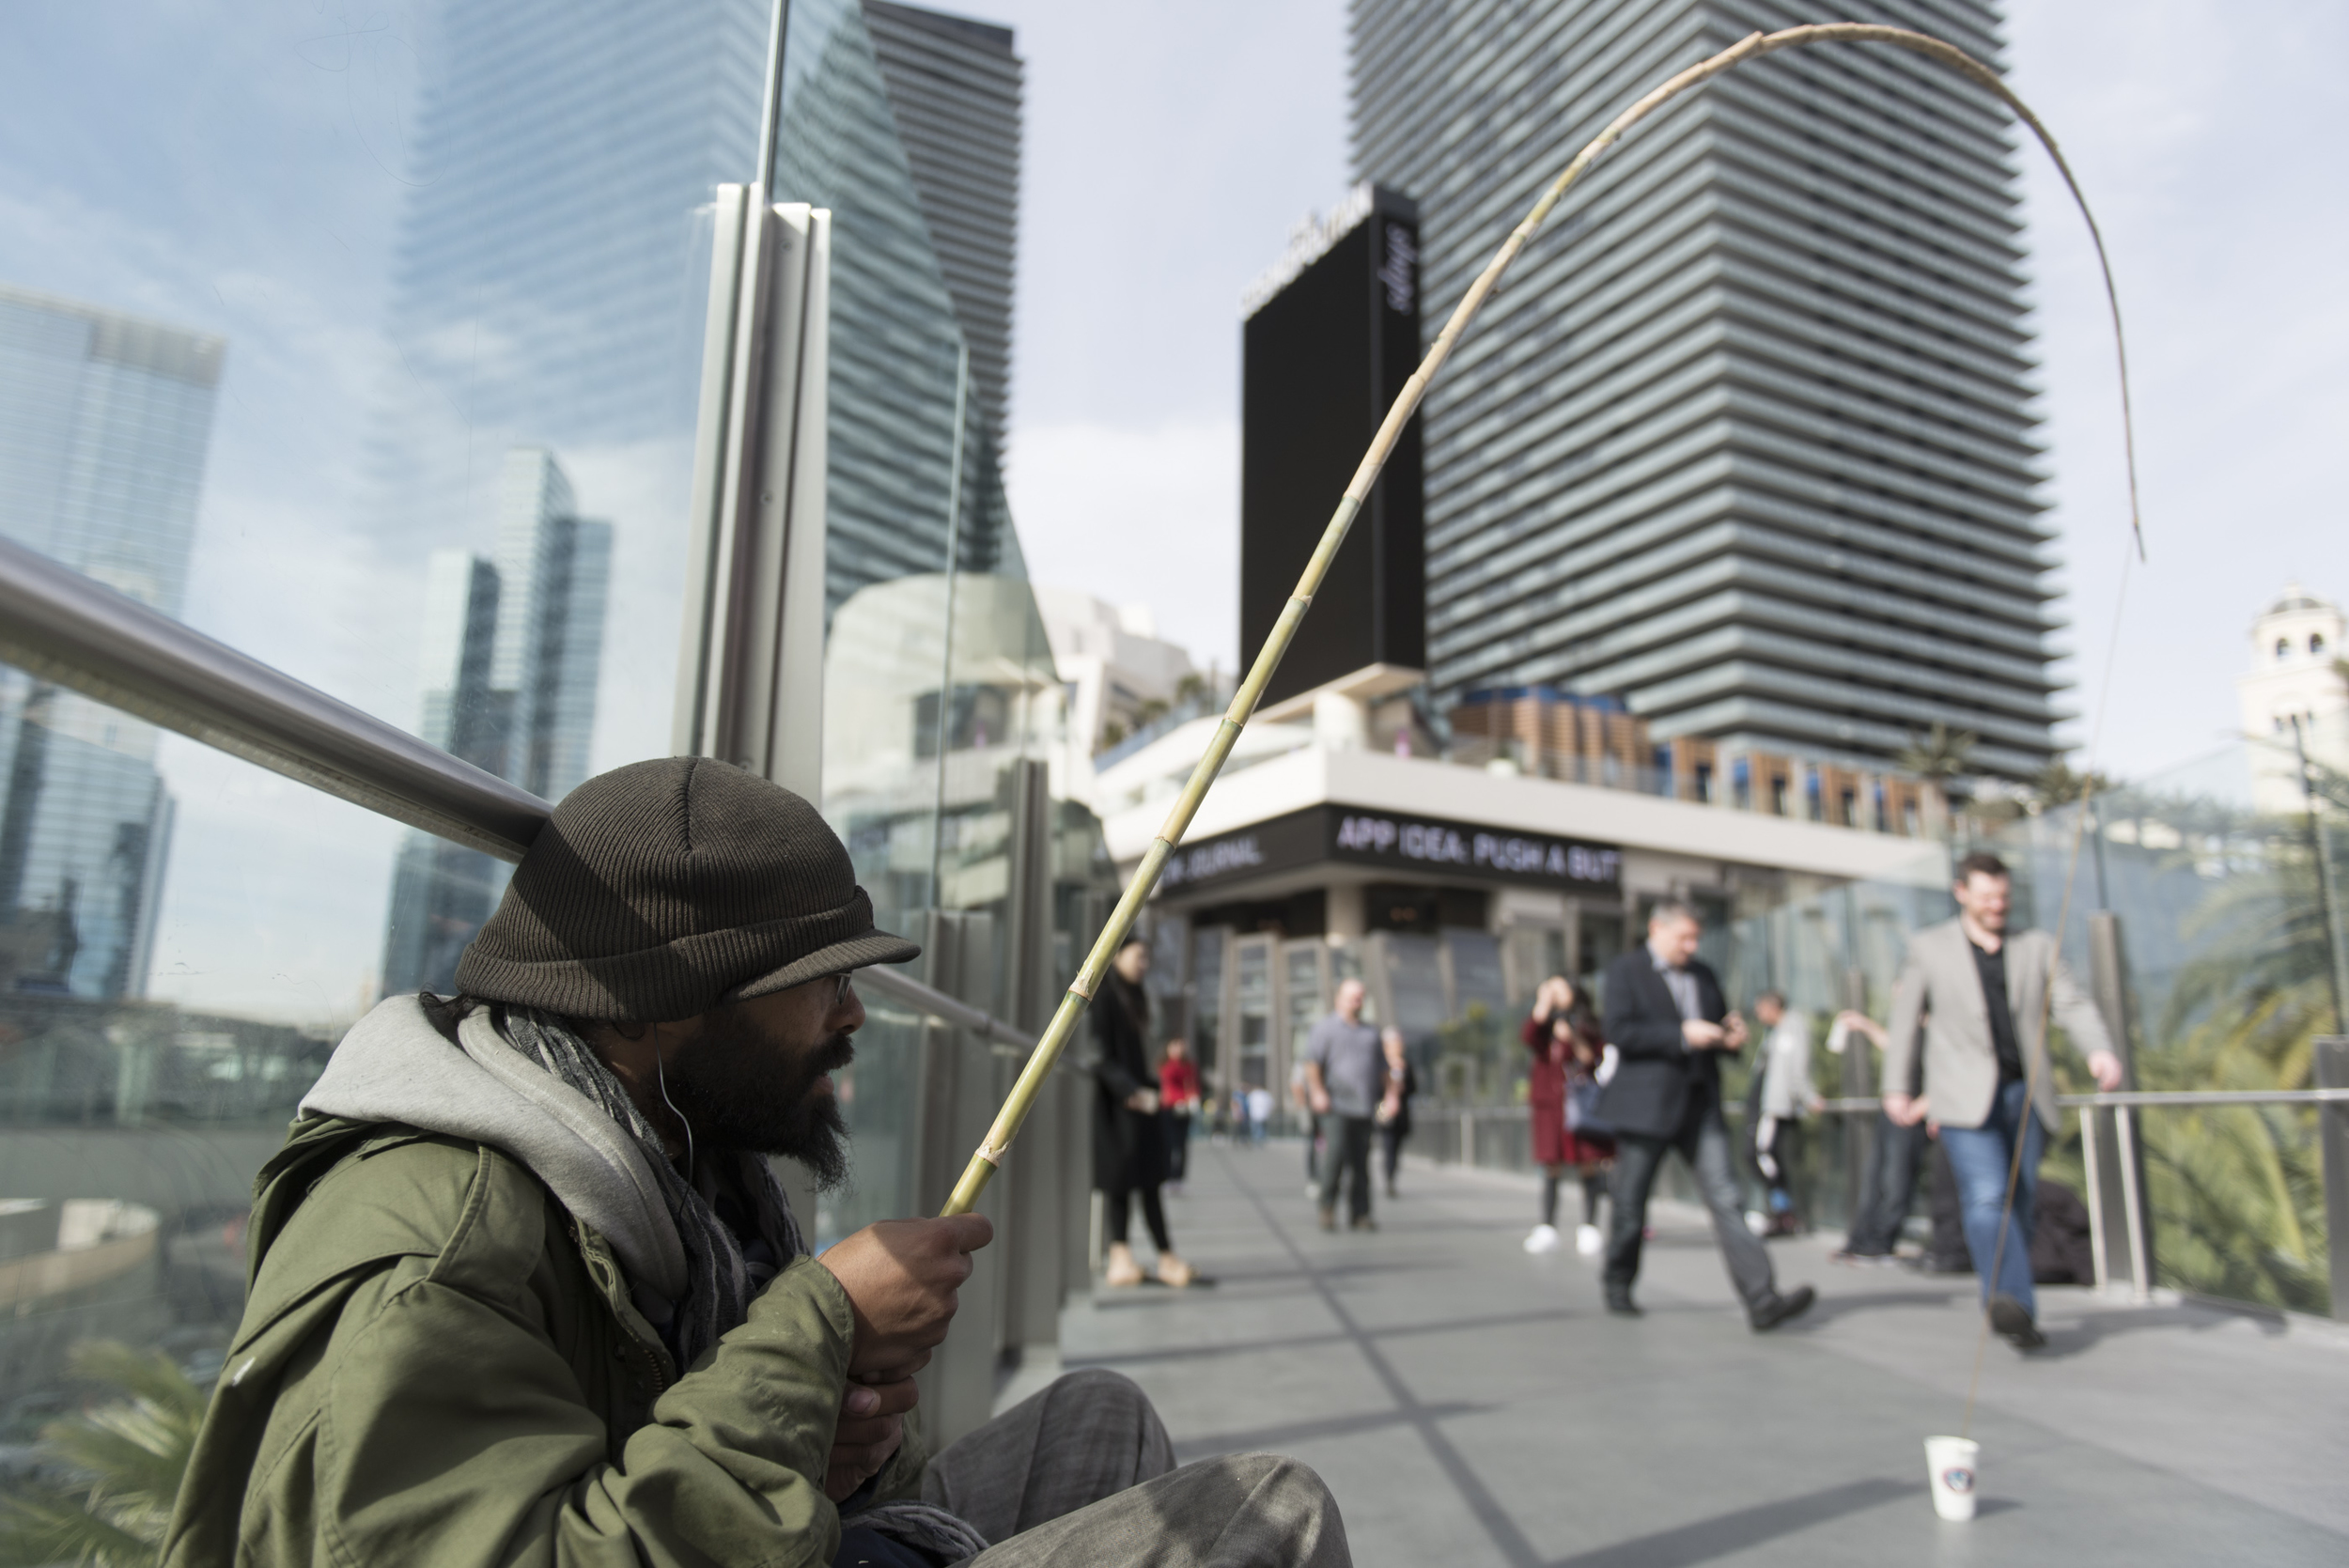 Clarence Witzel panhandles using a set up meant to mimic a fishing rod on the pedestrian overpass at South Las Vegas Boulevard and West Harmon Avenue in Las Vegas Thursday, Jan. 21, 2016. Jason Ogulnik/Las Vegas Review-Journal